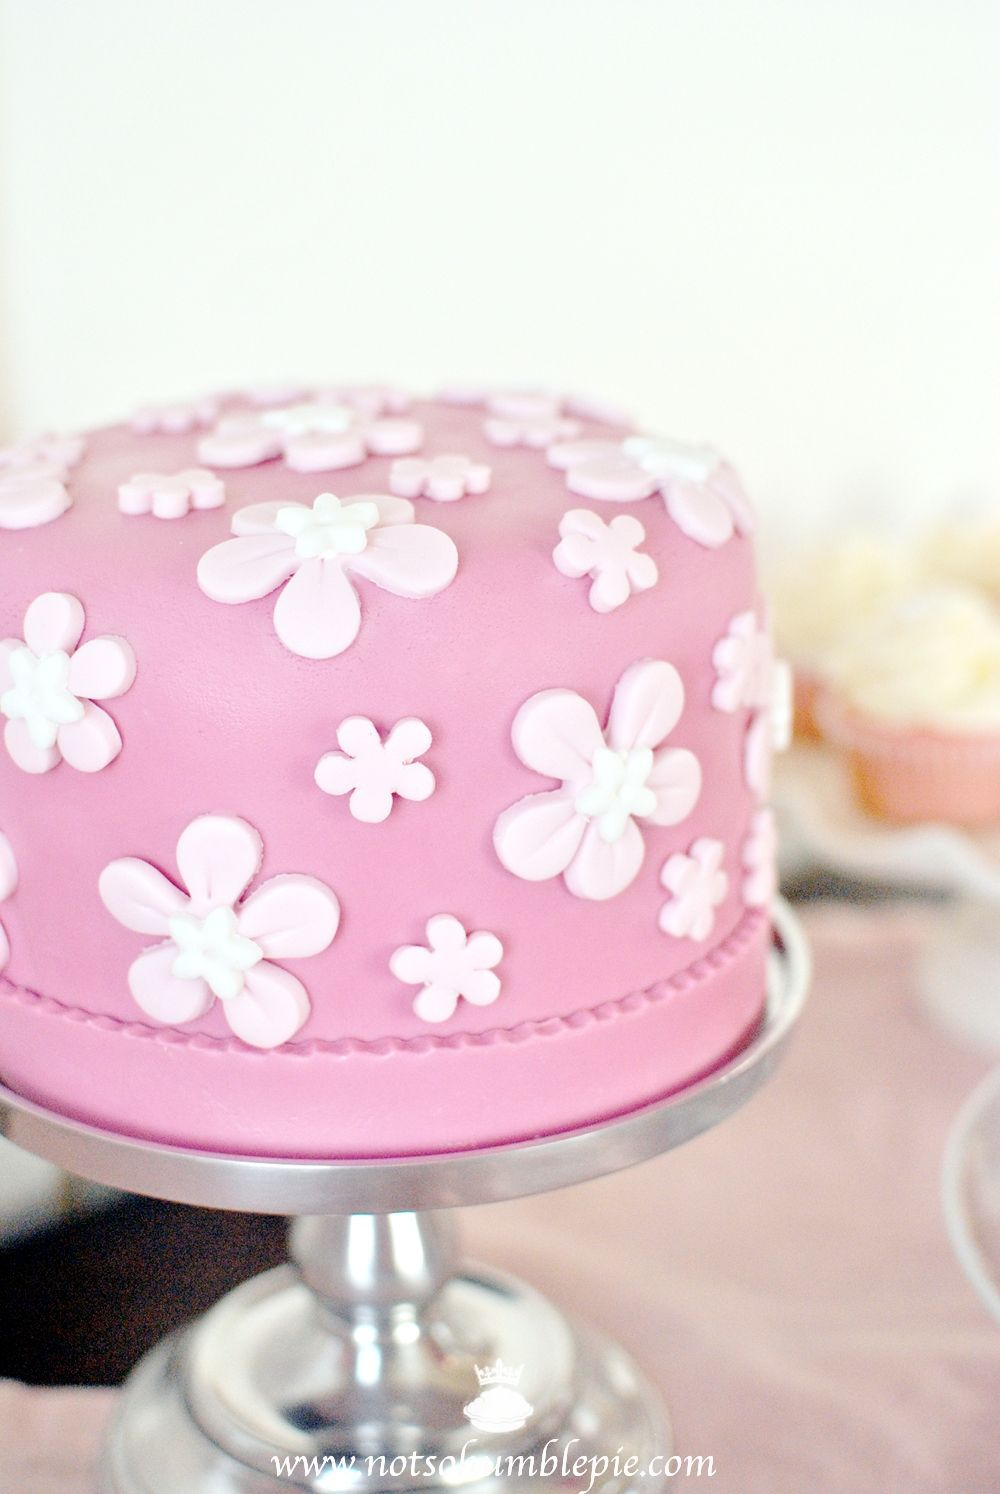 Cute Pop Art Style Pink Flower Cake With Embossed Detail At The